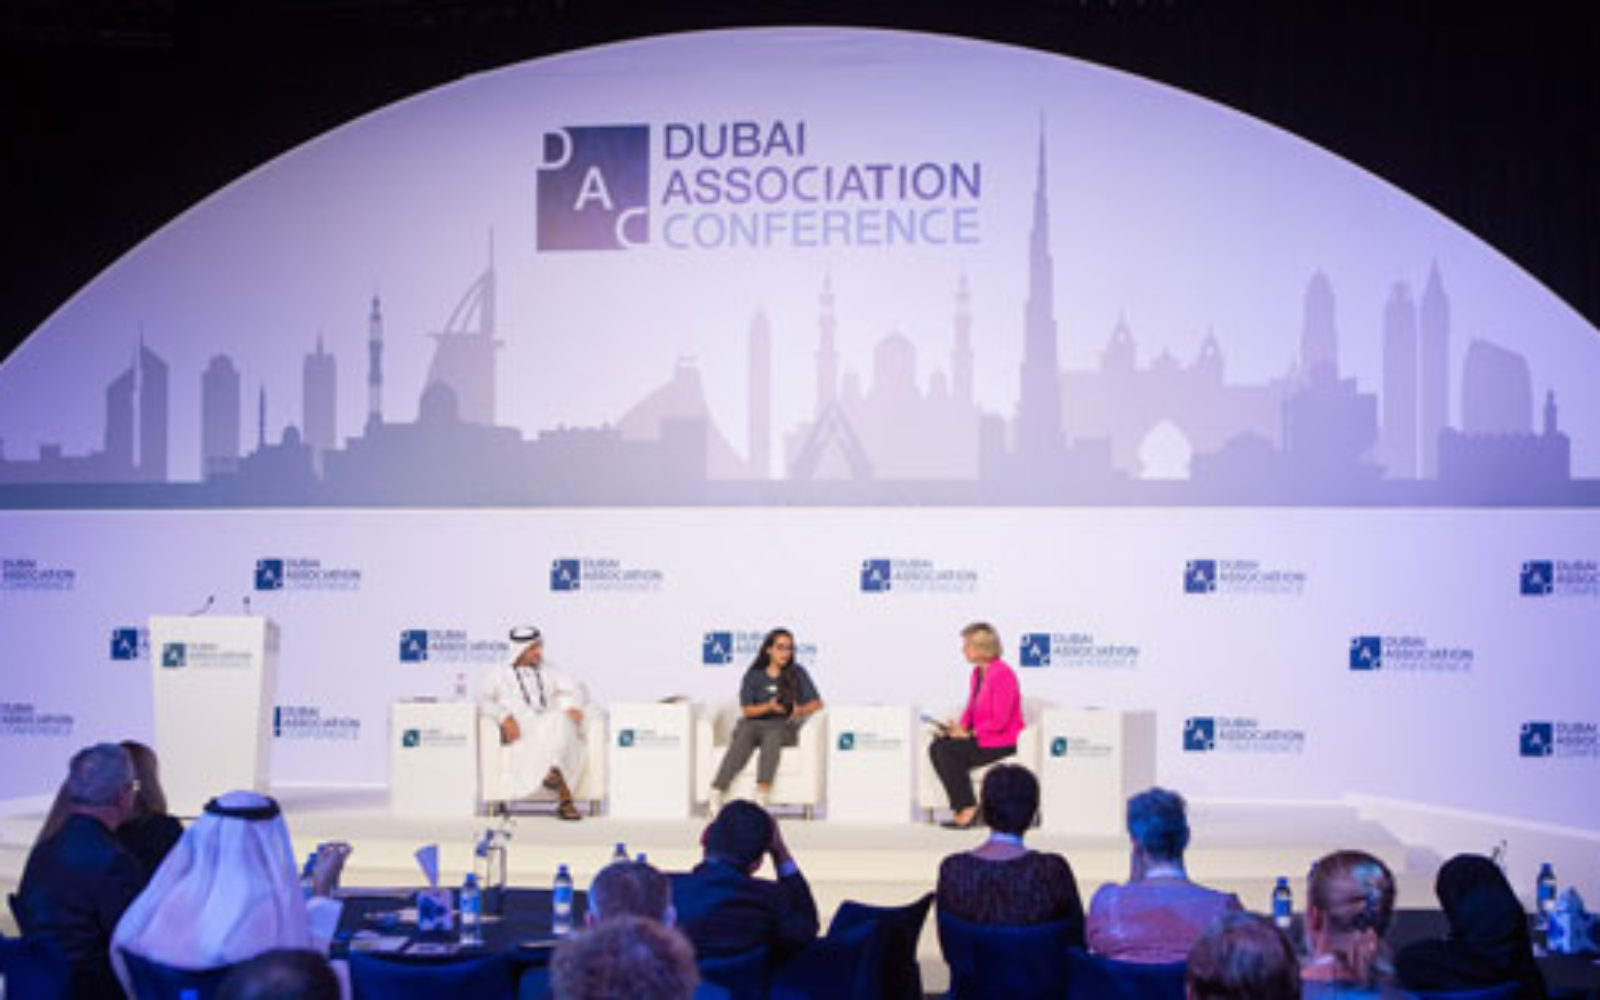 2017 most successful year to date for Dubai Business Events - CMW